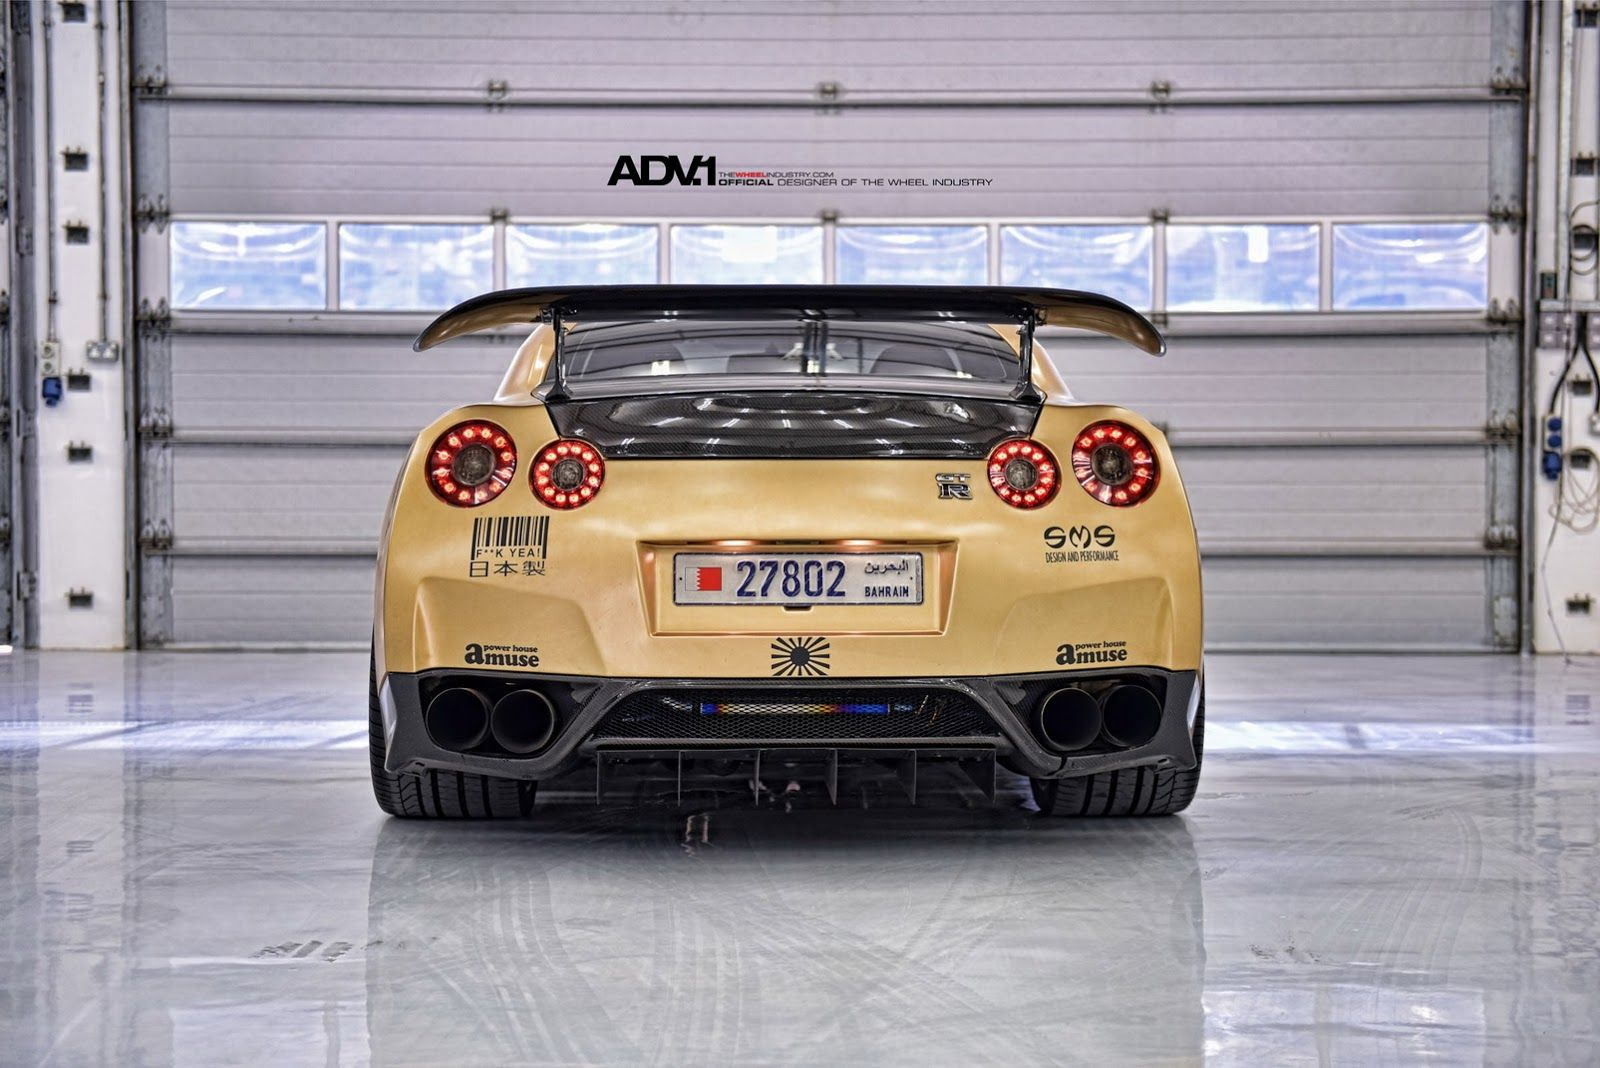 Nissan nissan deportivos nissan gt r nissan gt r r35 tuning cars - Carbon Gold Nissan Gt R Looks Beyond Mean 33 Pics Nissan Pinterest Nissan Gt Nissan And Gold